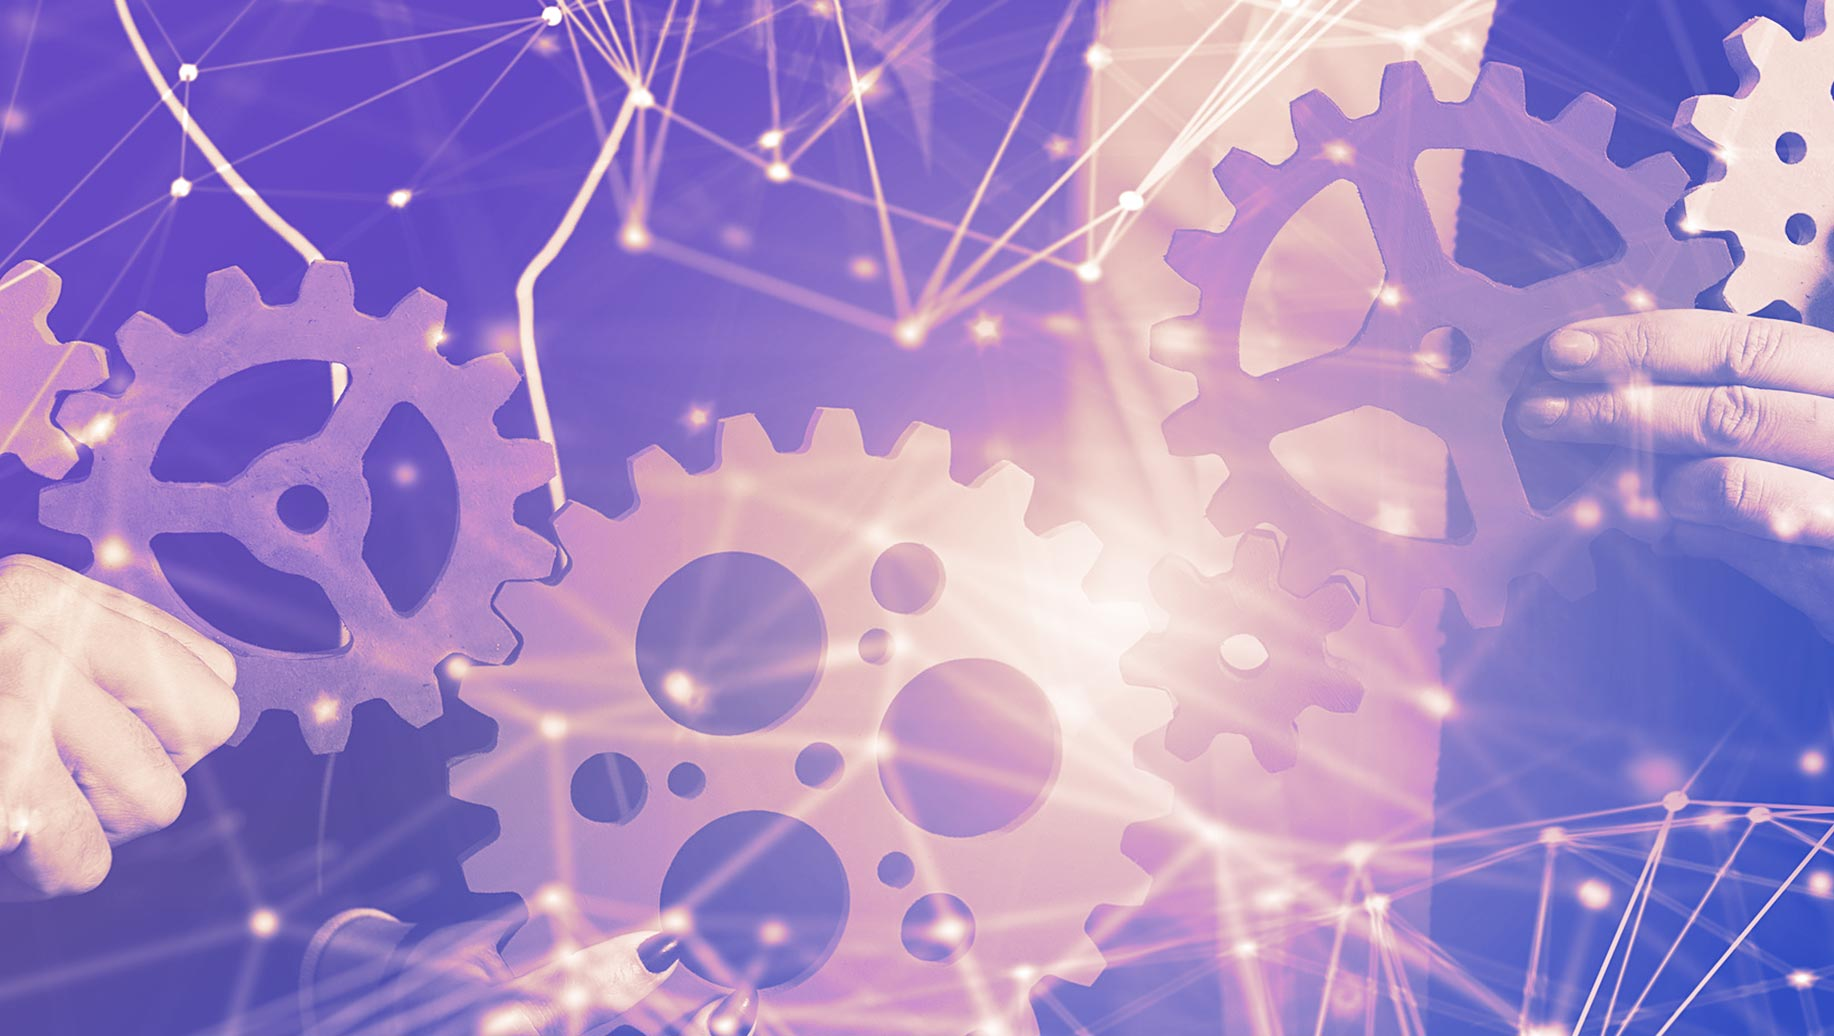 Smart Process Automation: What Is It & How Is It Being Used?